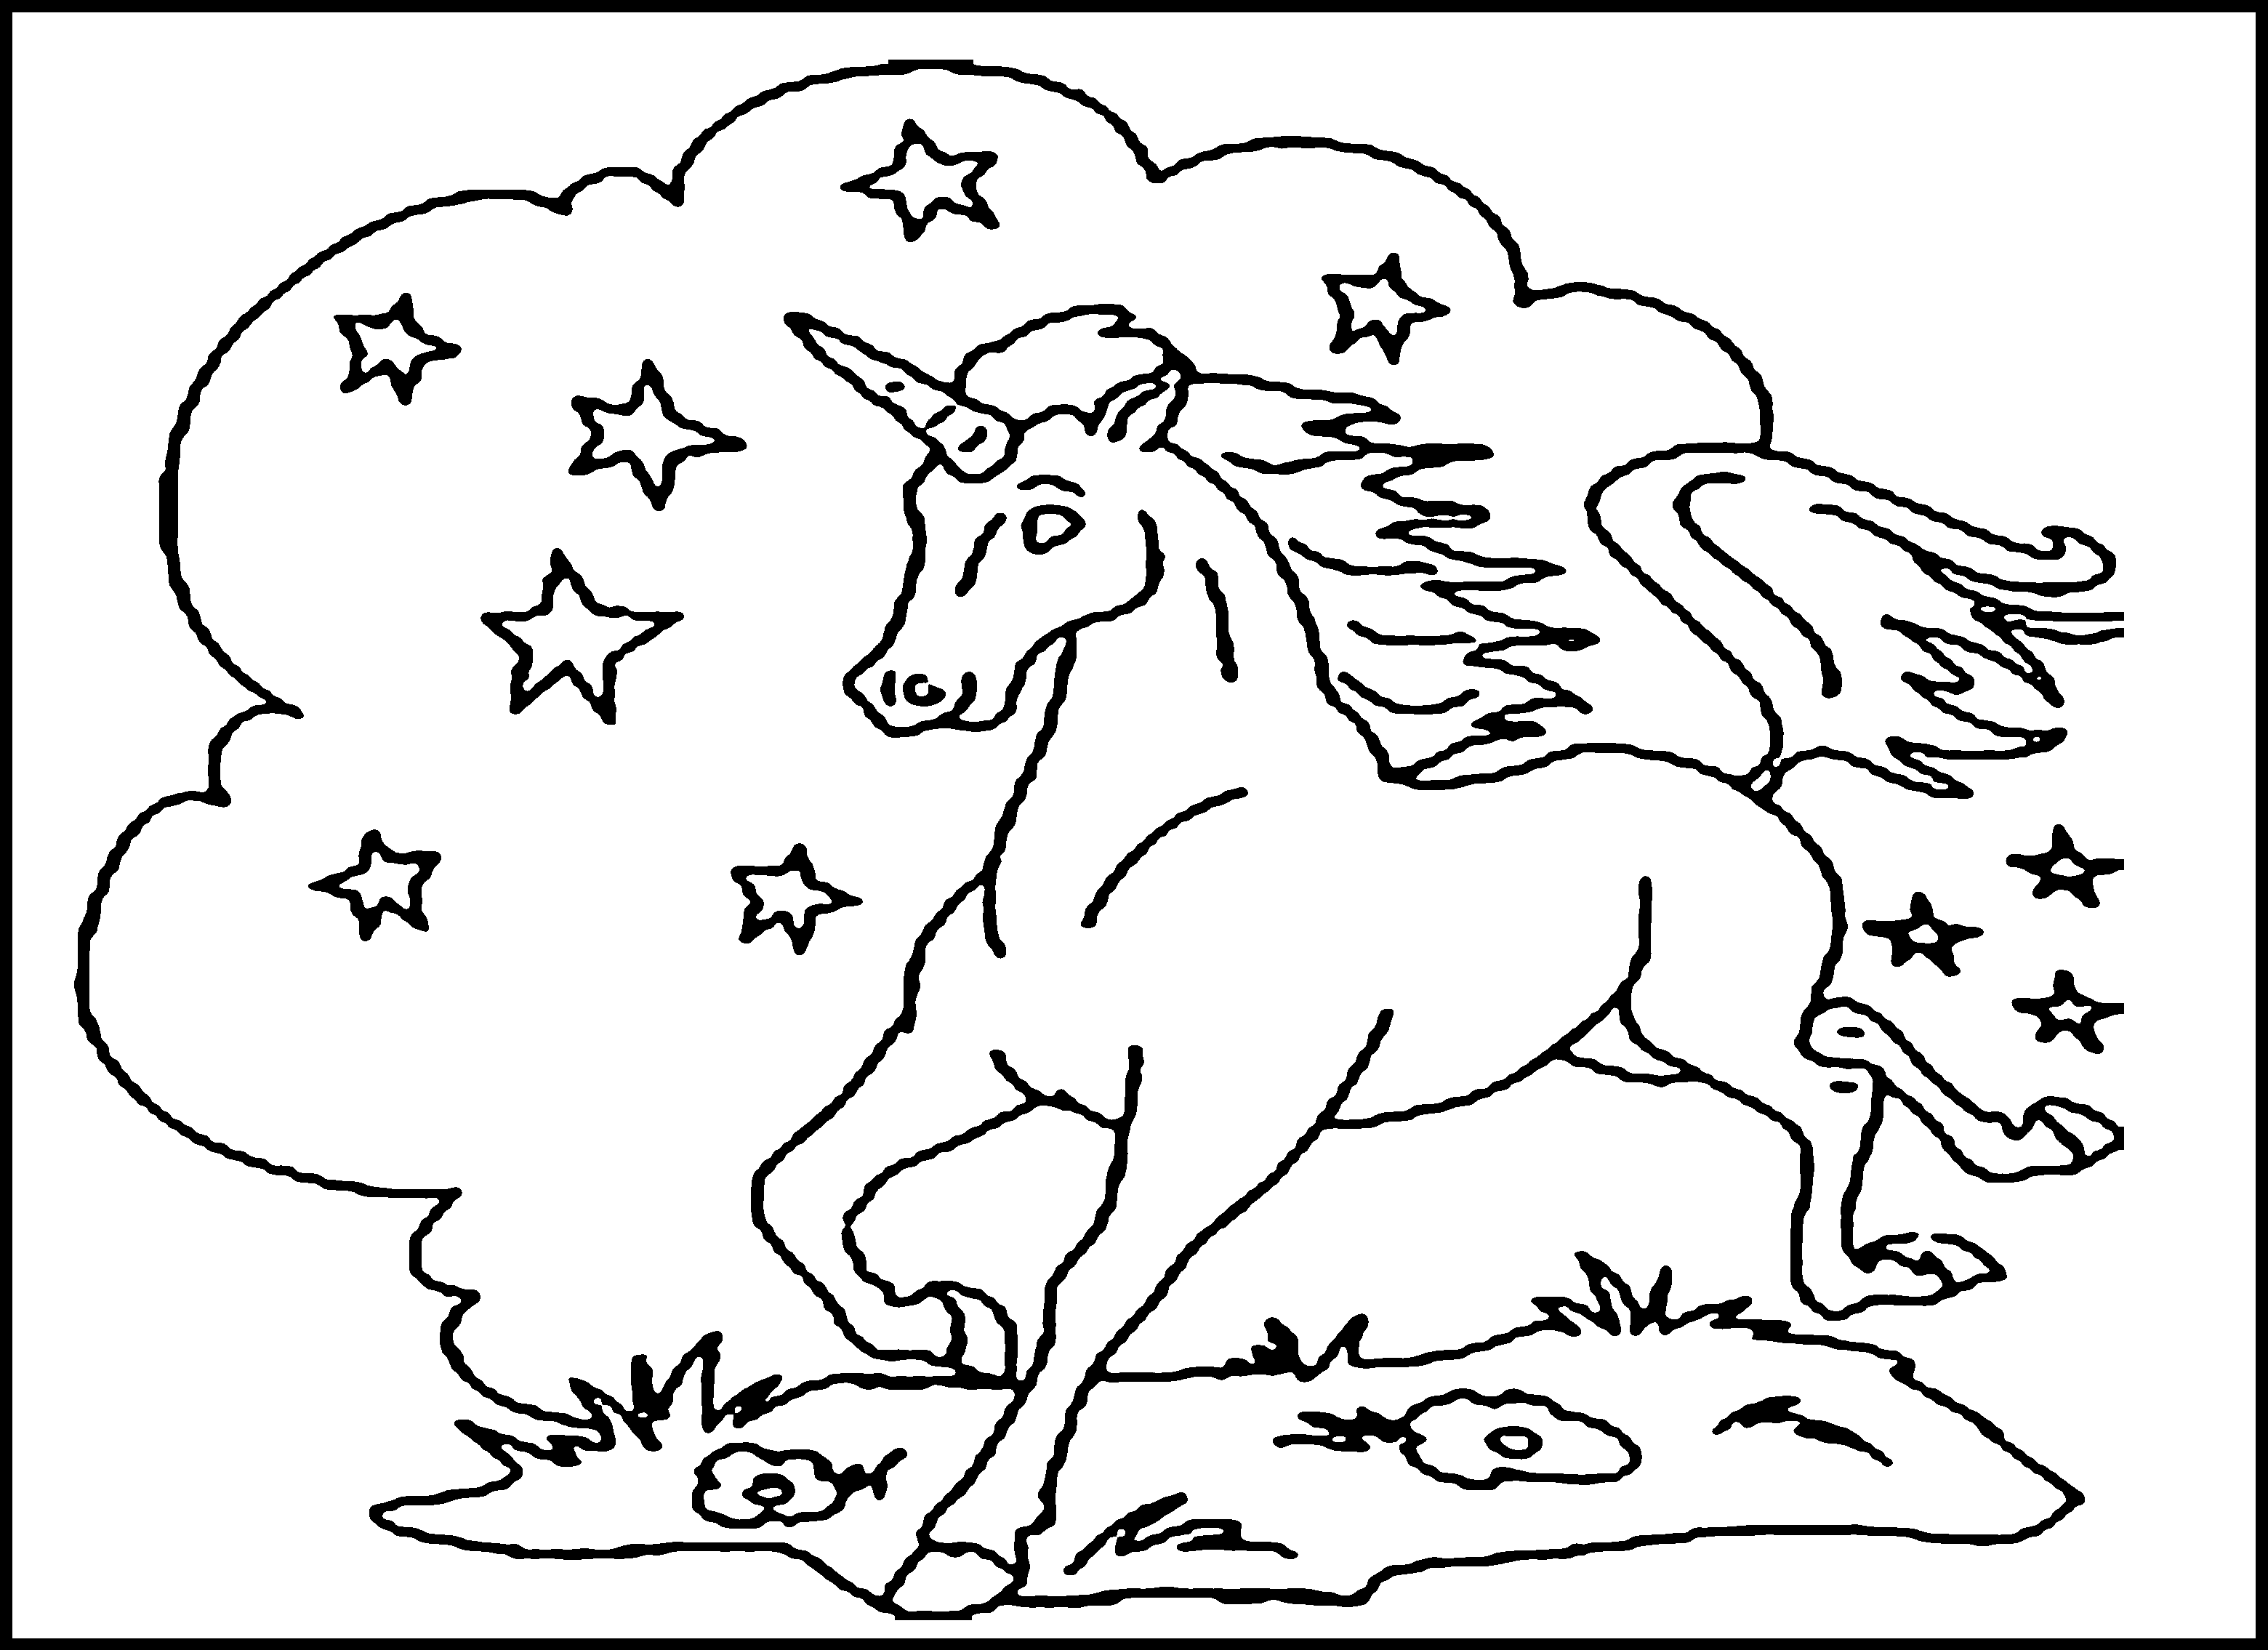 Childrens animal colouring pages - Unicorn Printable Coloring Pages